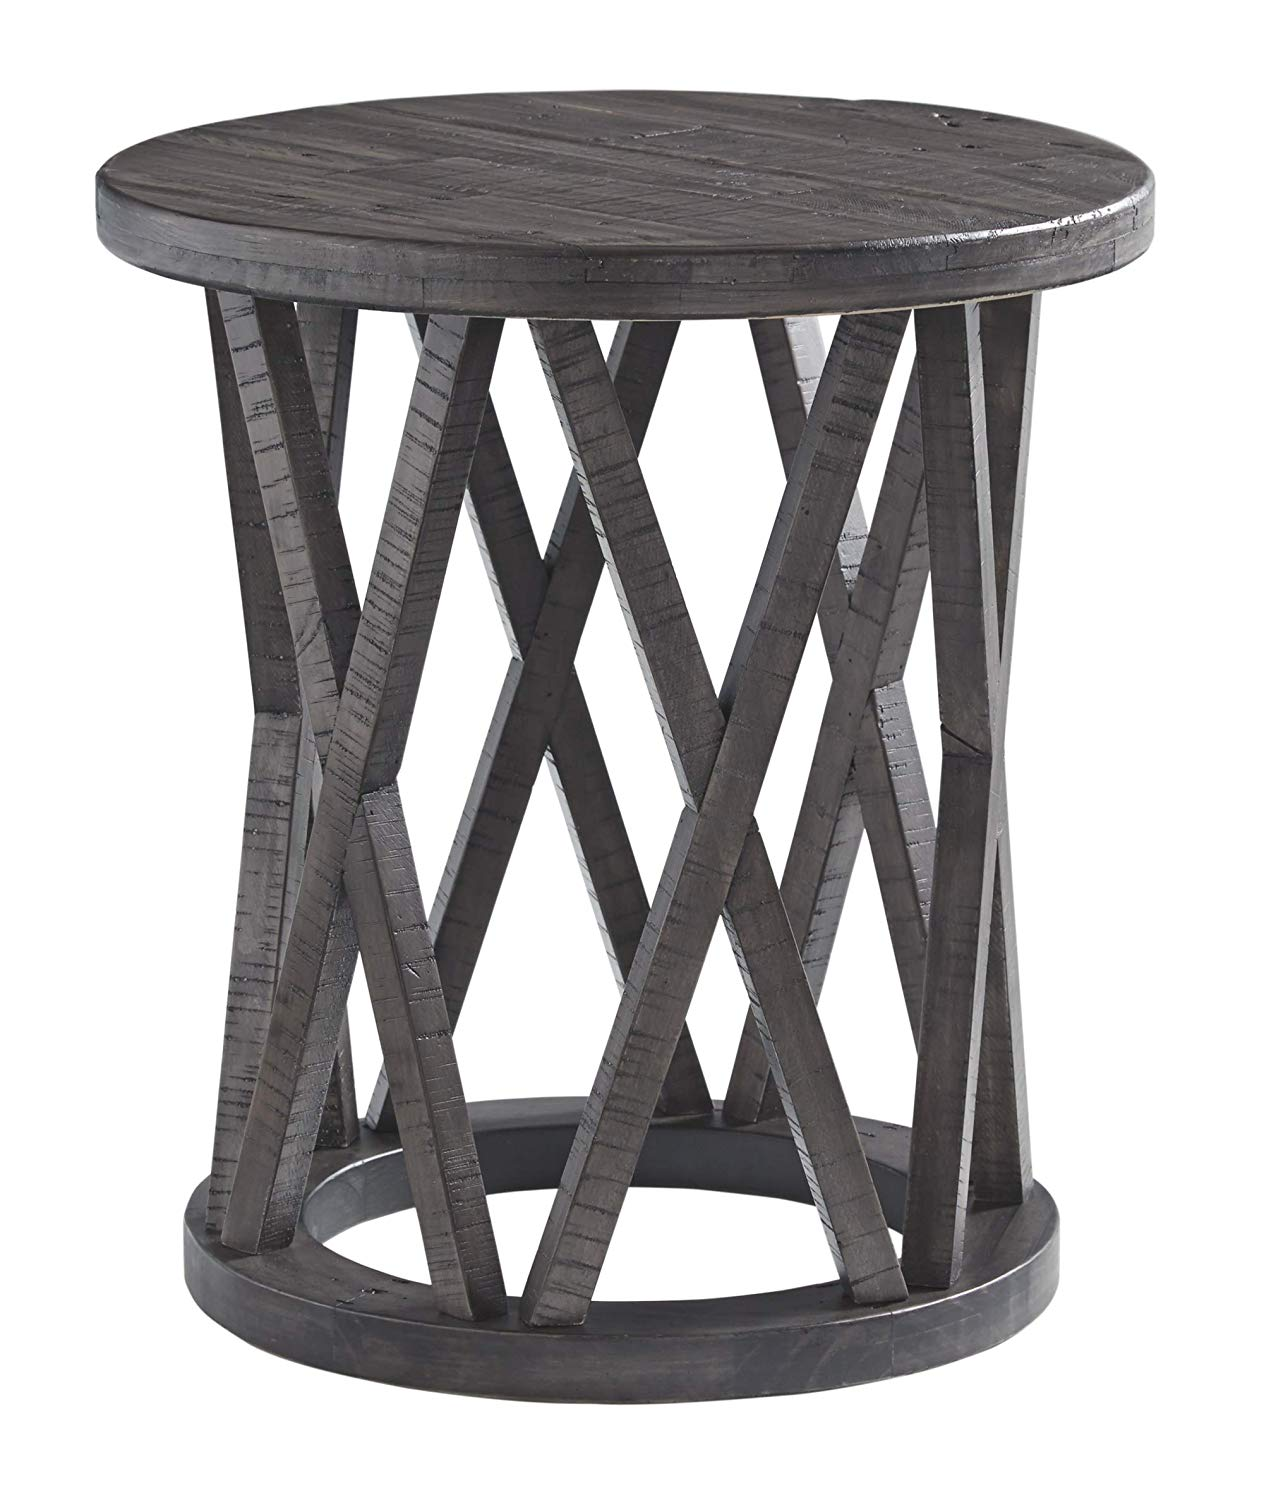 signature design ashley sharzane round end brown table grayish kitchen dining rustic coffee ideas patio decorating leather sofa stand kmart furniture clearance lounge suite gray